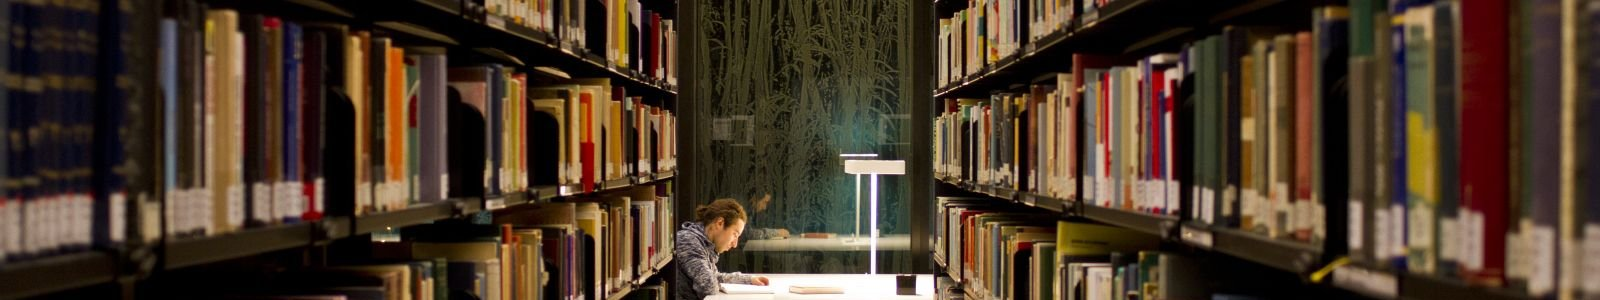 student theses university library utrecht university student theses